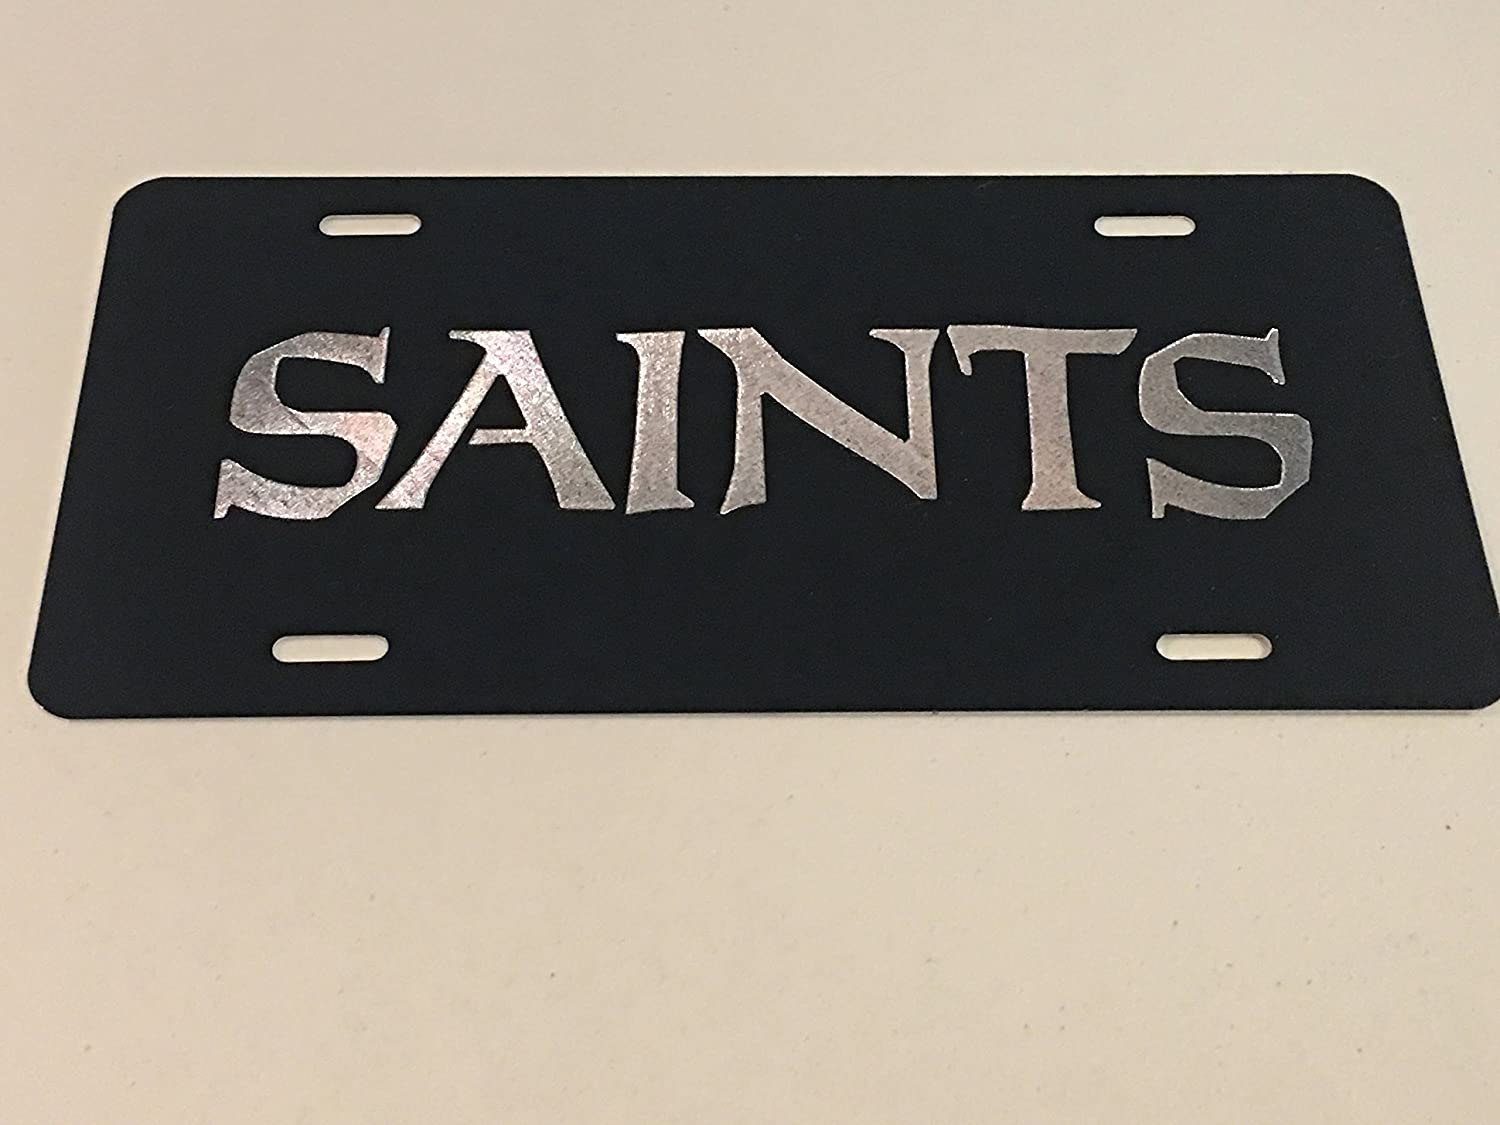 Diamond Etched New Orleans Saints 2 Logo Car Tag on Black Aluminum License Plate